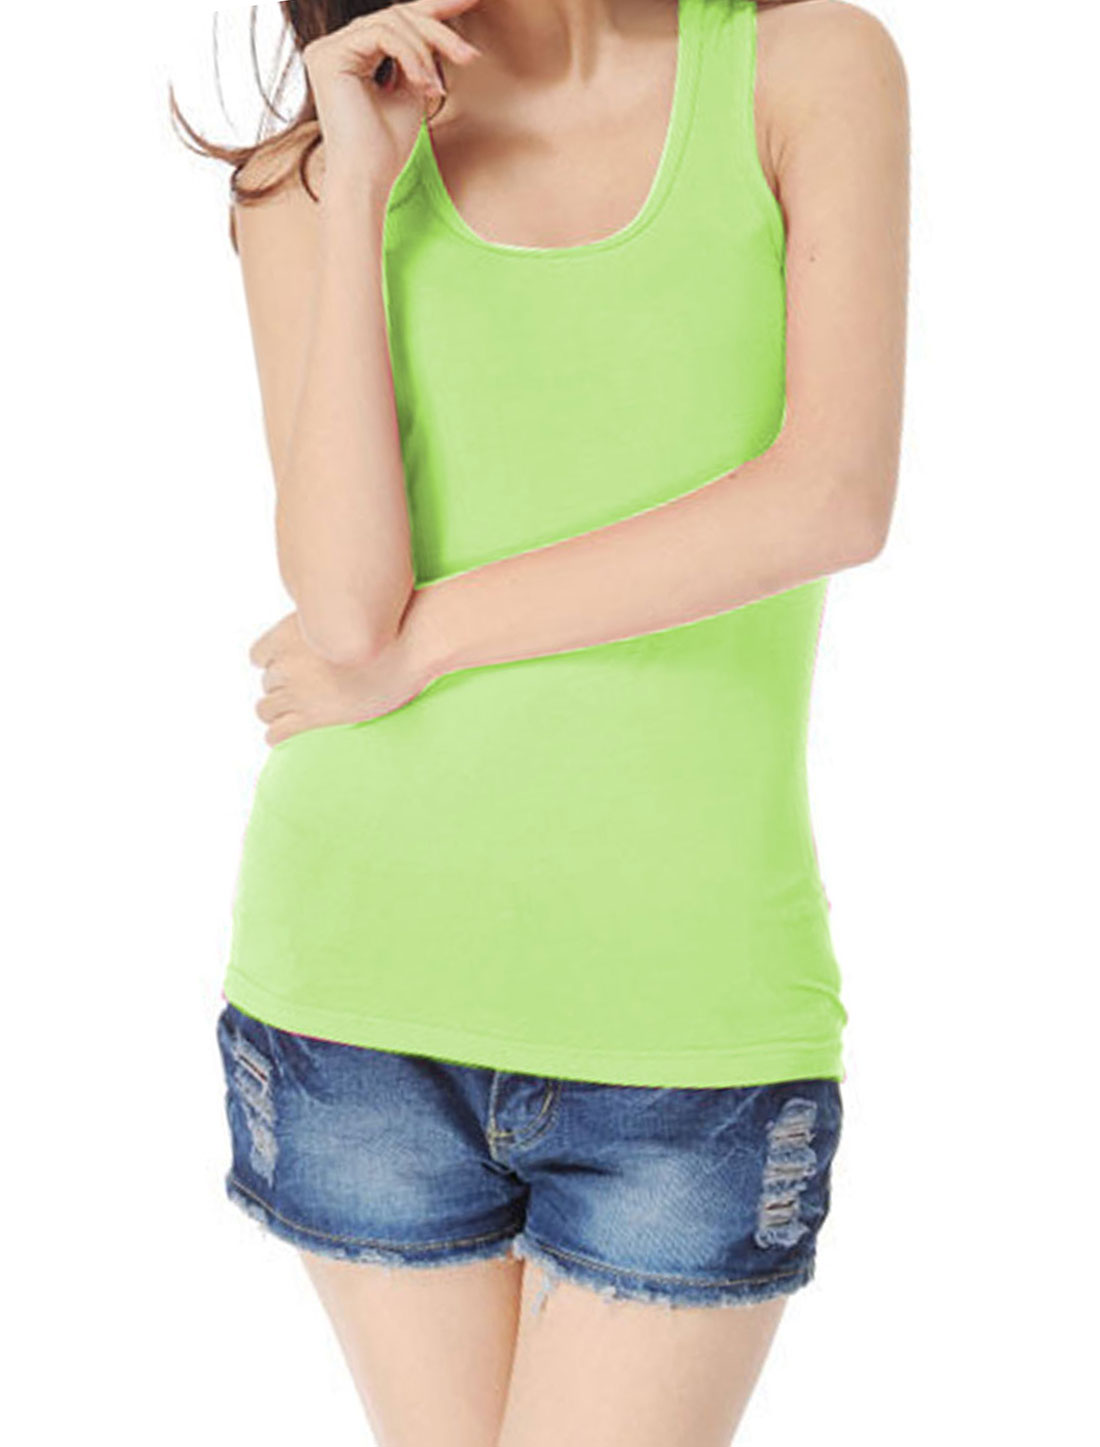 U Neck Ribbed Stretchy Racerback Tank Top Shirts Apple Green XS for Women